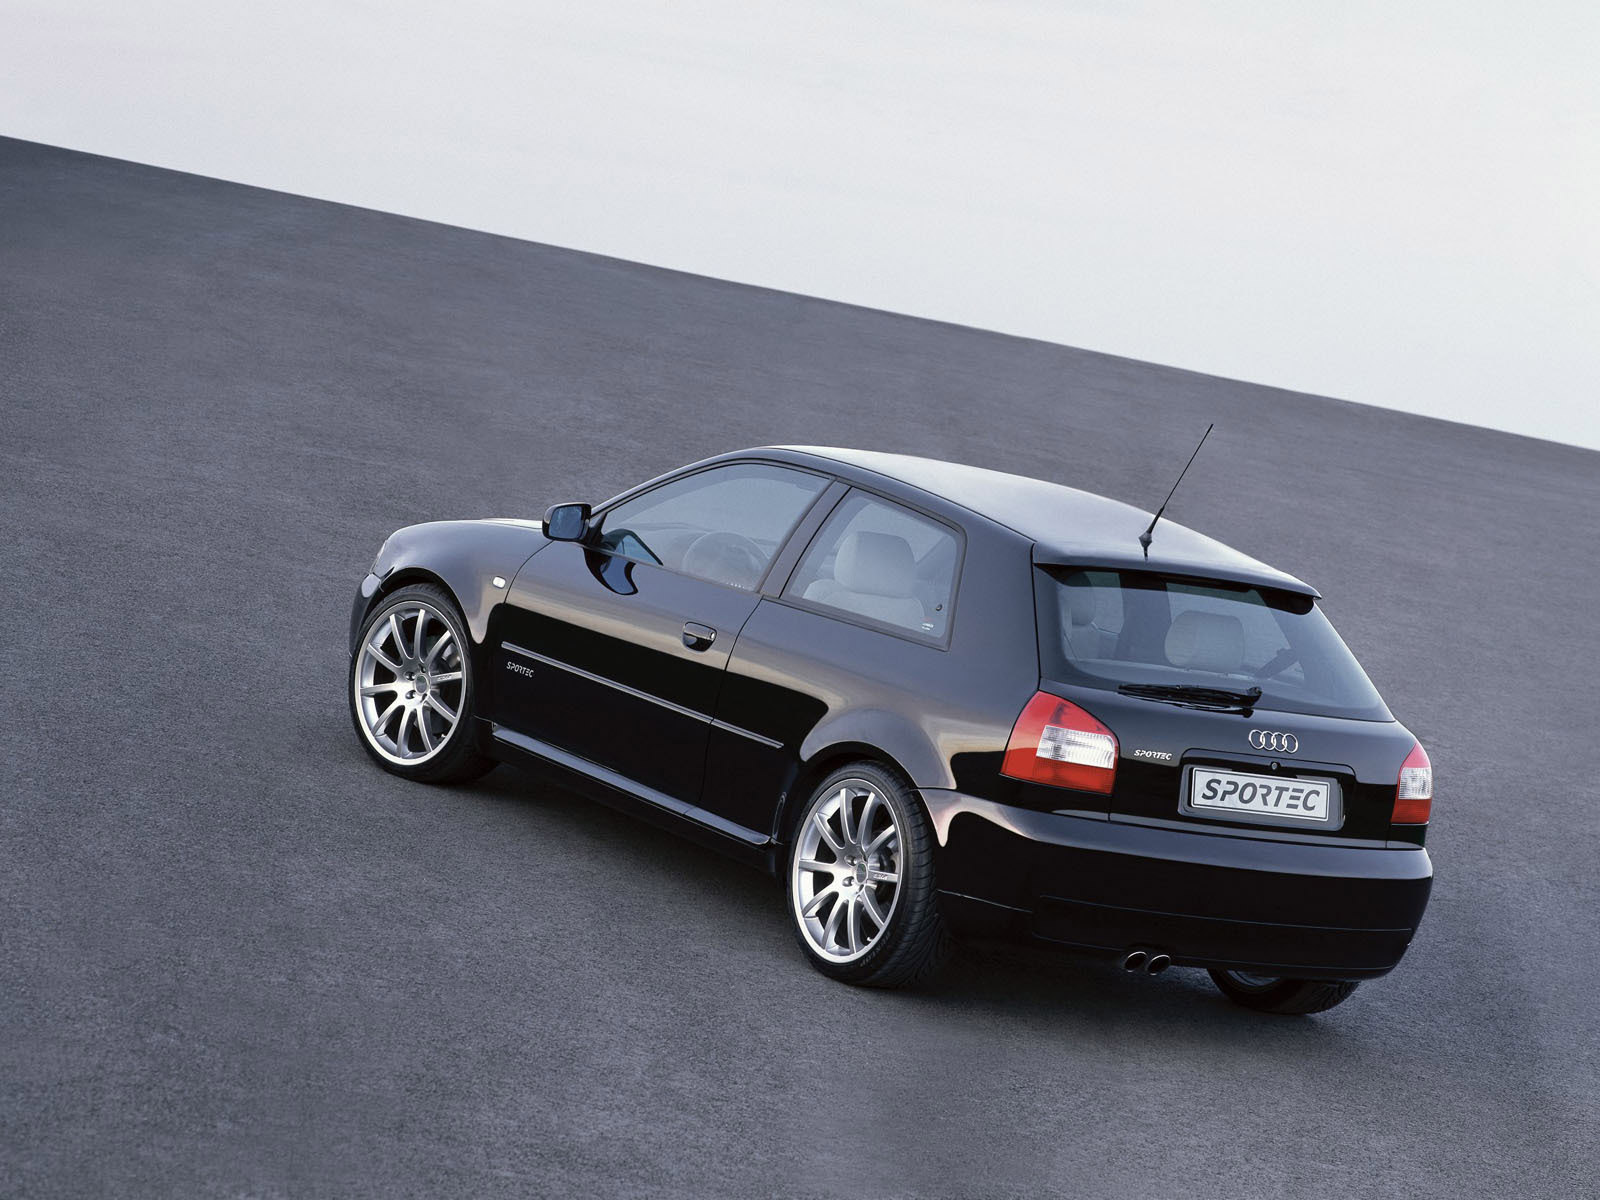 sportec audi a3 8l sportec audi a3 8l photo 02 car in pictures car photo gallery. Black Bedroom Furniture Sets. Home Design Ideas